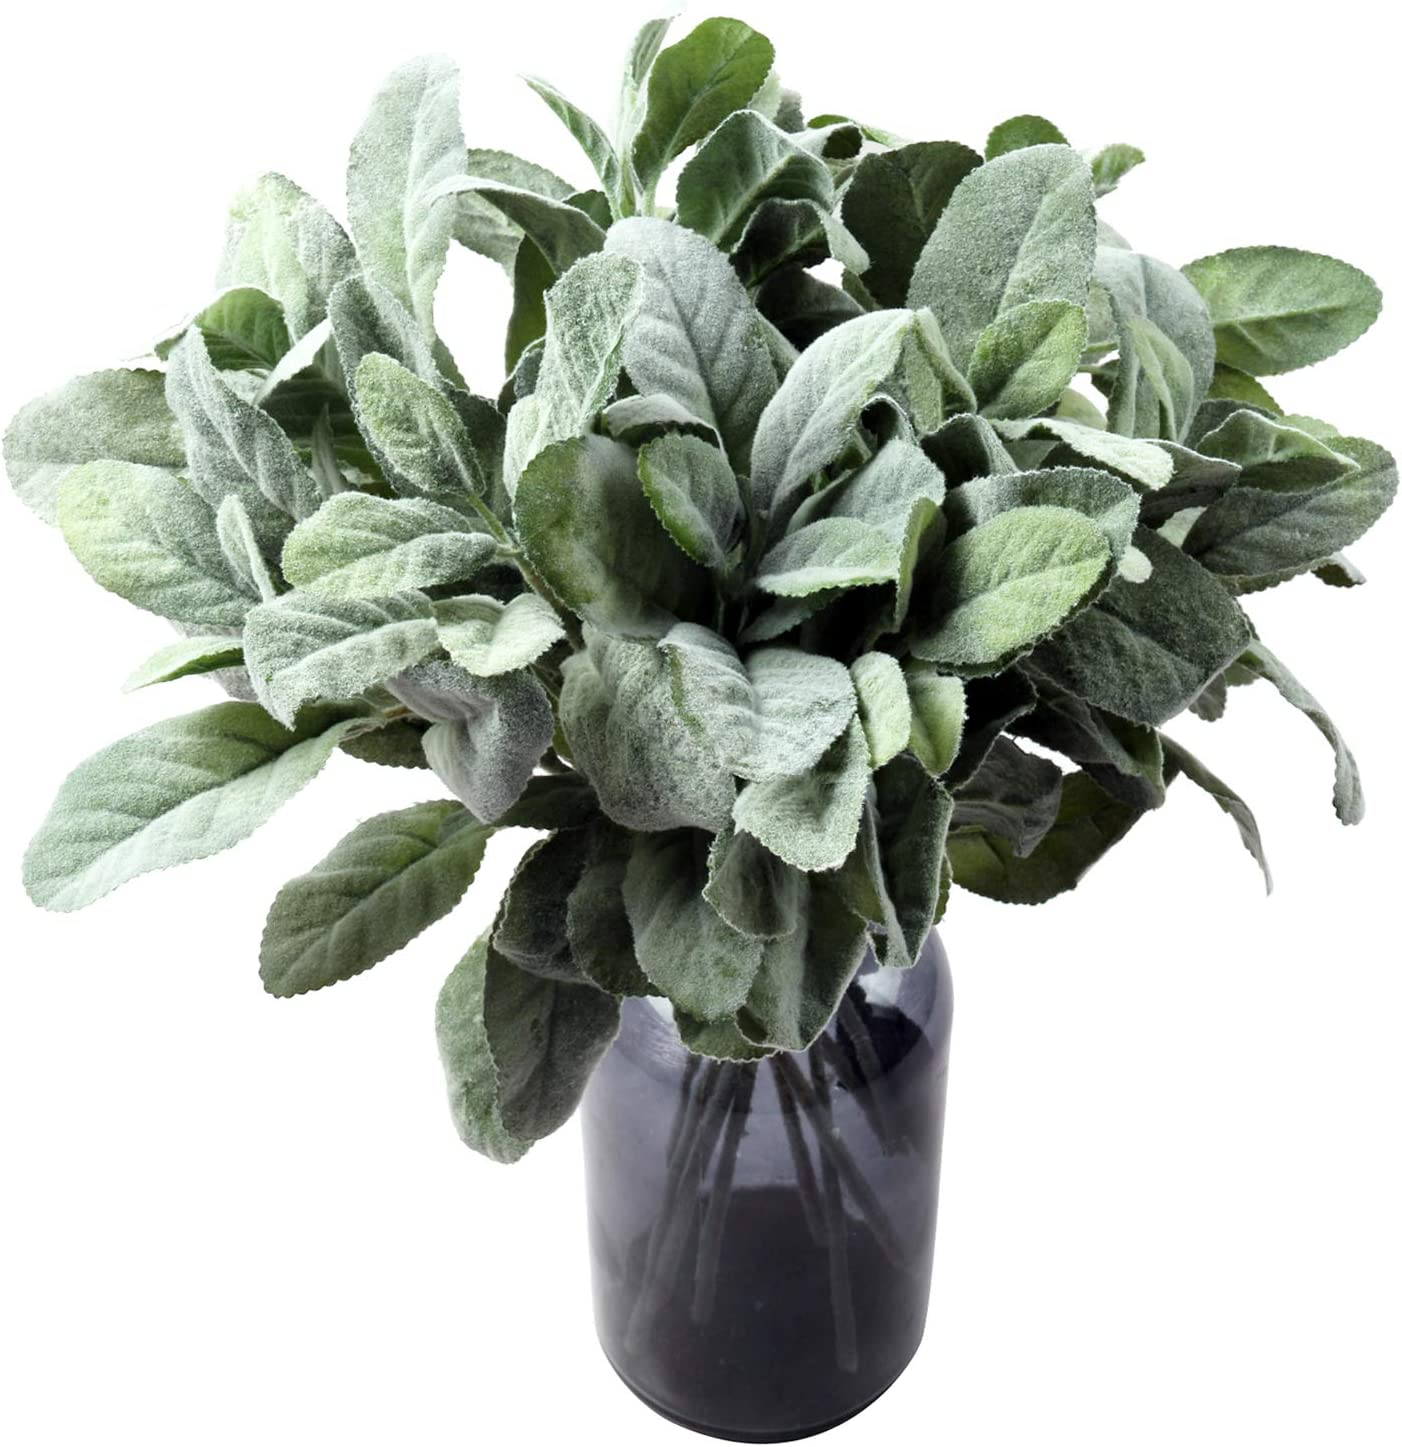 Amazon Com Shacos 12 Pcs Artificial Flocked Lambs Ear Spray Lambs Ear Stems Foliage Picks Artificial Greenery Plant For Home Wedding Diy Craft Floral Arrangement 12 Pcs Green Kitchen Dining